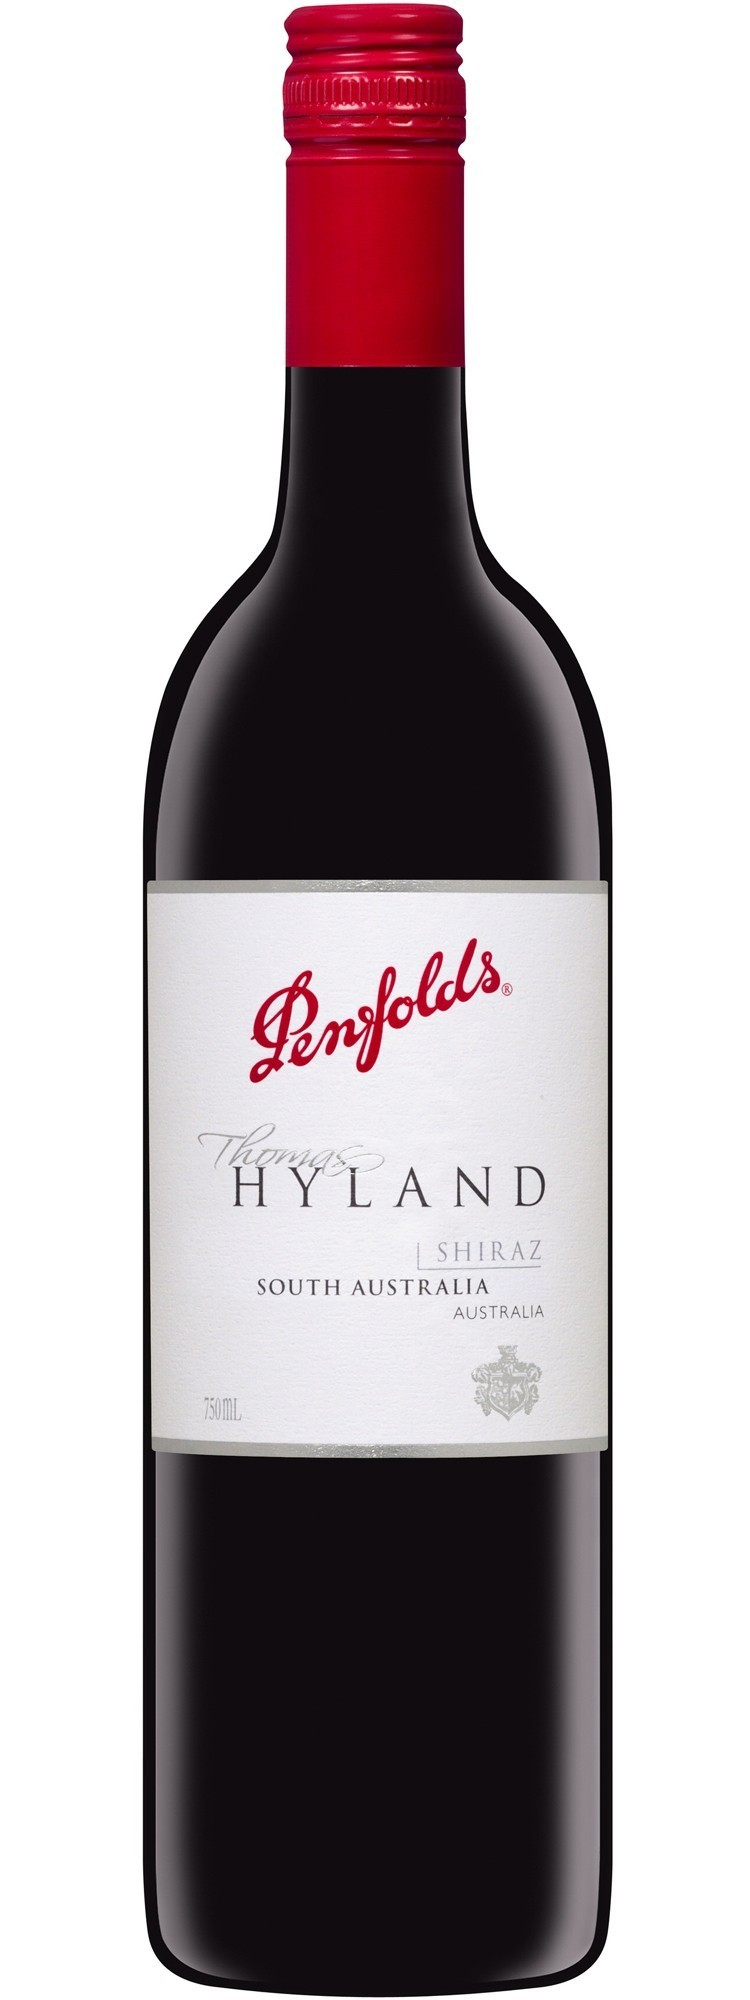 PENFOLDS THOMAS HYLAND SHIRAZ